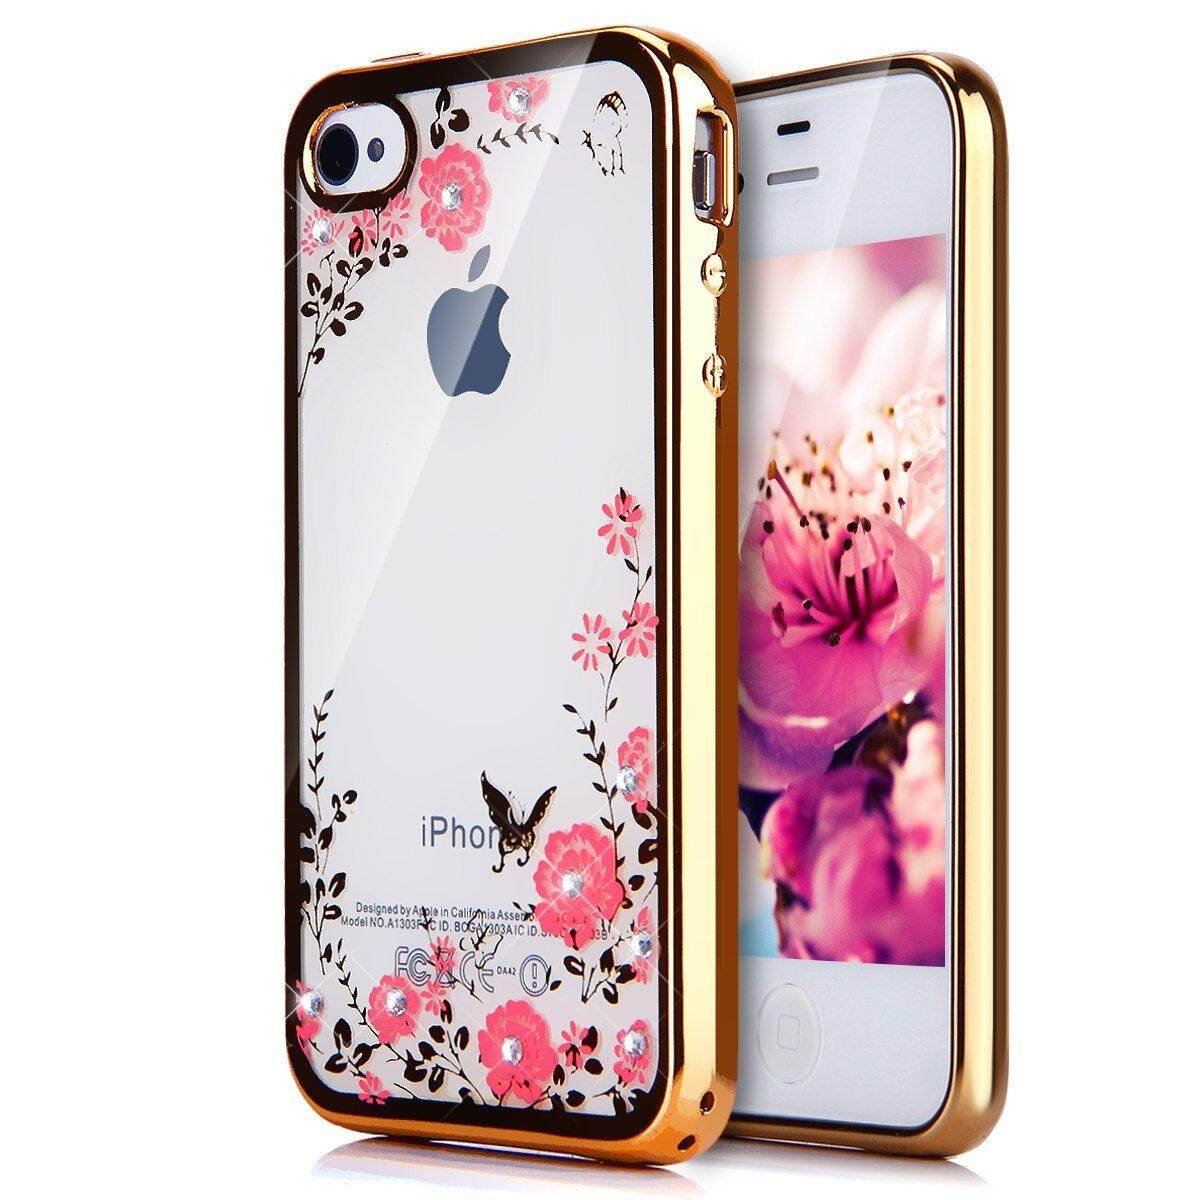 Buy Sell Cheapest No 1 Plating Best Quality Product Deals Peonia Electroplating Transparent Ultrathin Xiaomi Redmi Note 5 Pro Ai For Iphone 4s 4 Clear Soft Butterfly Floral Flower Bling Crystal Rhinestone Case Cover